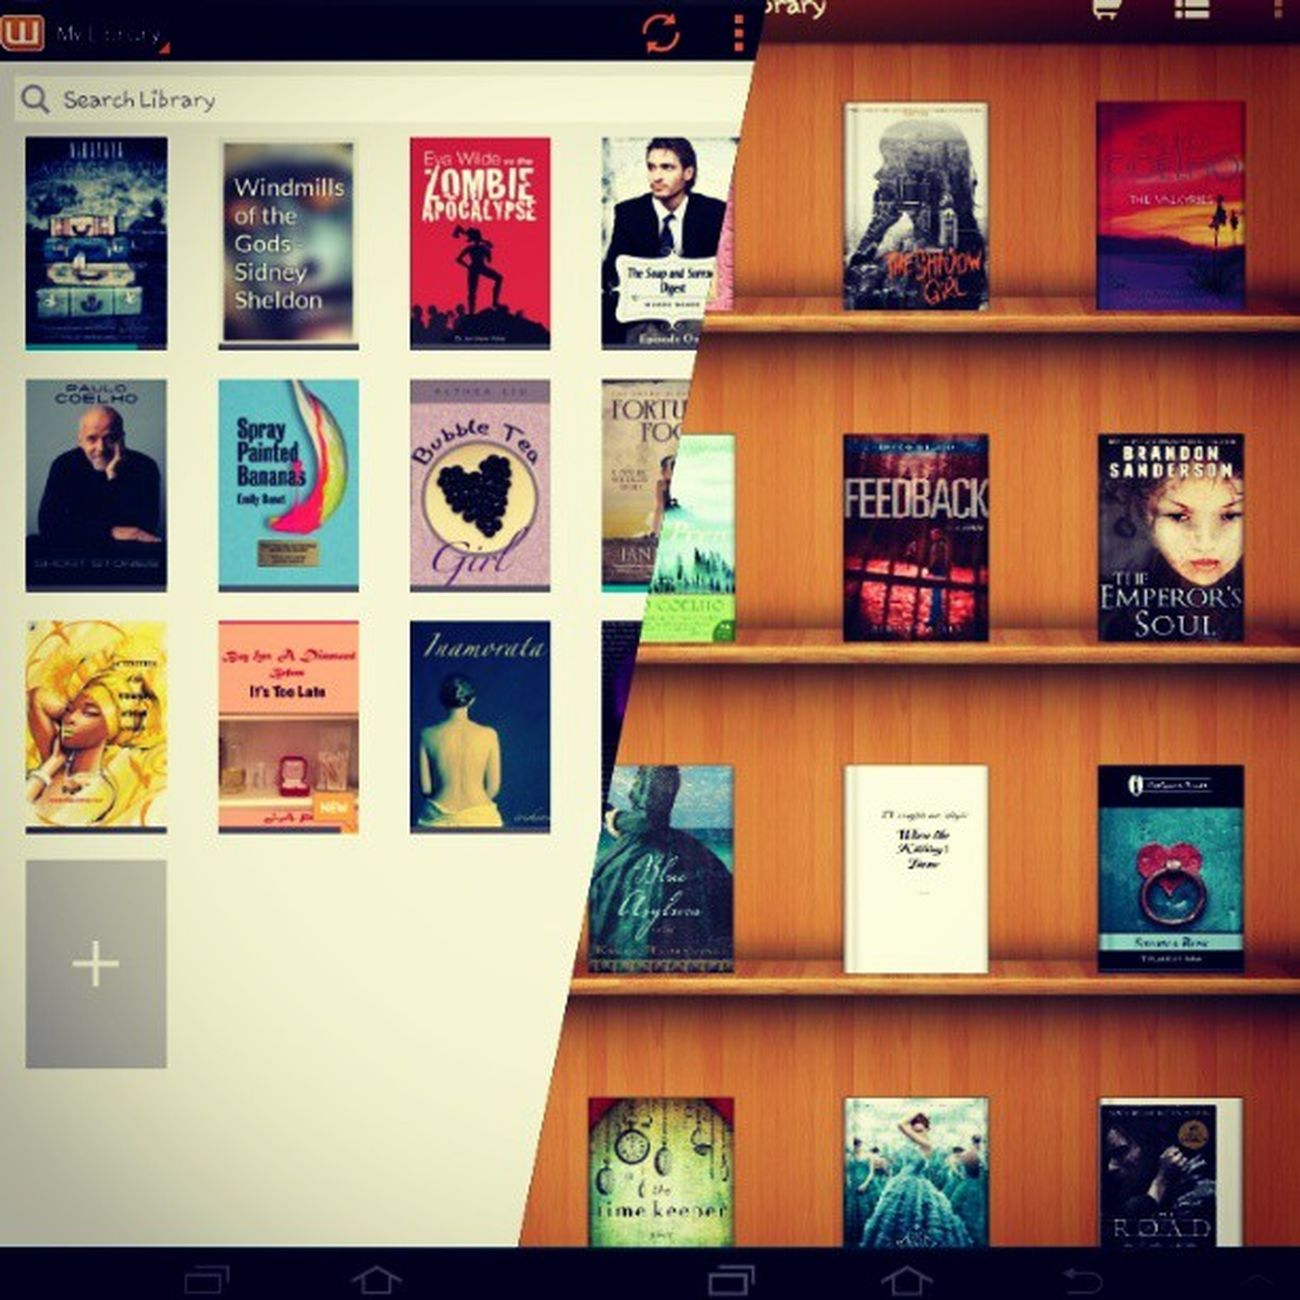 Ebook collection. Certifiedebooklover Readingjunkie Loveit Igers Igcapture Igshot Instagram Instacapture Followme Followback